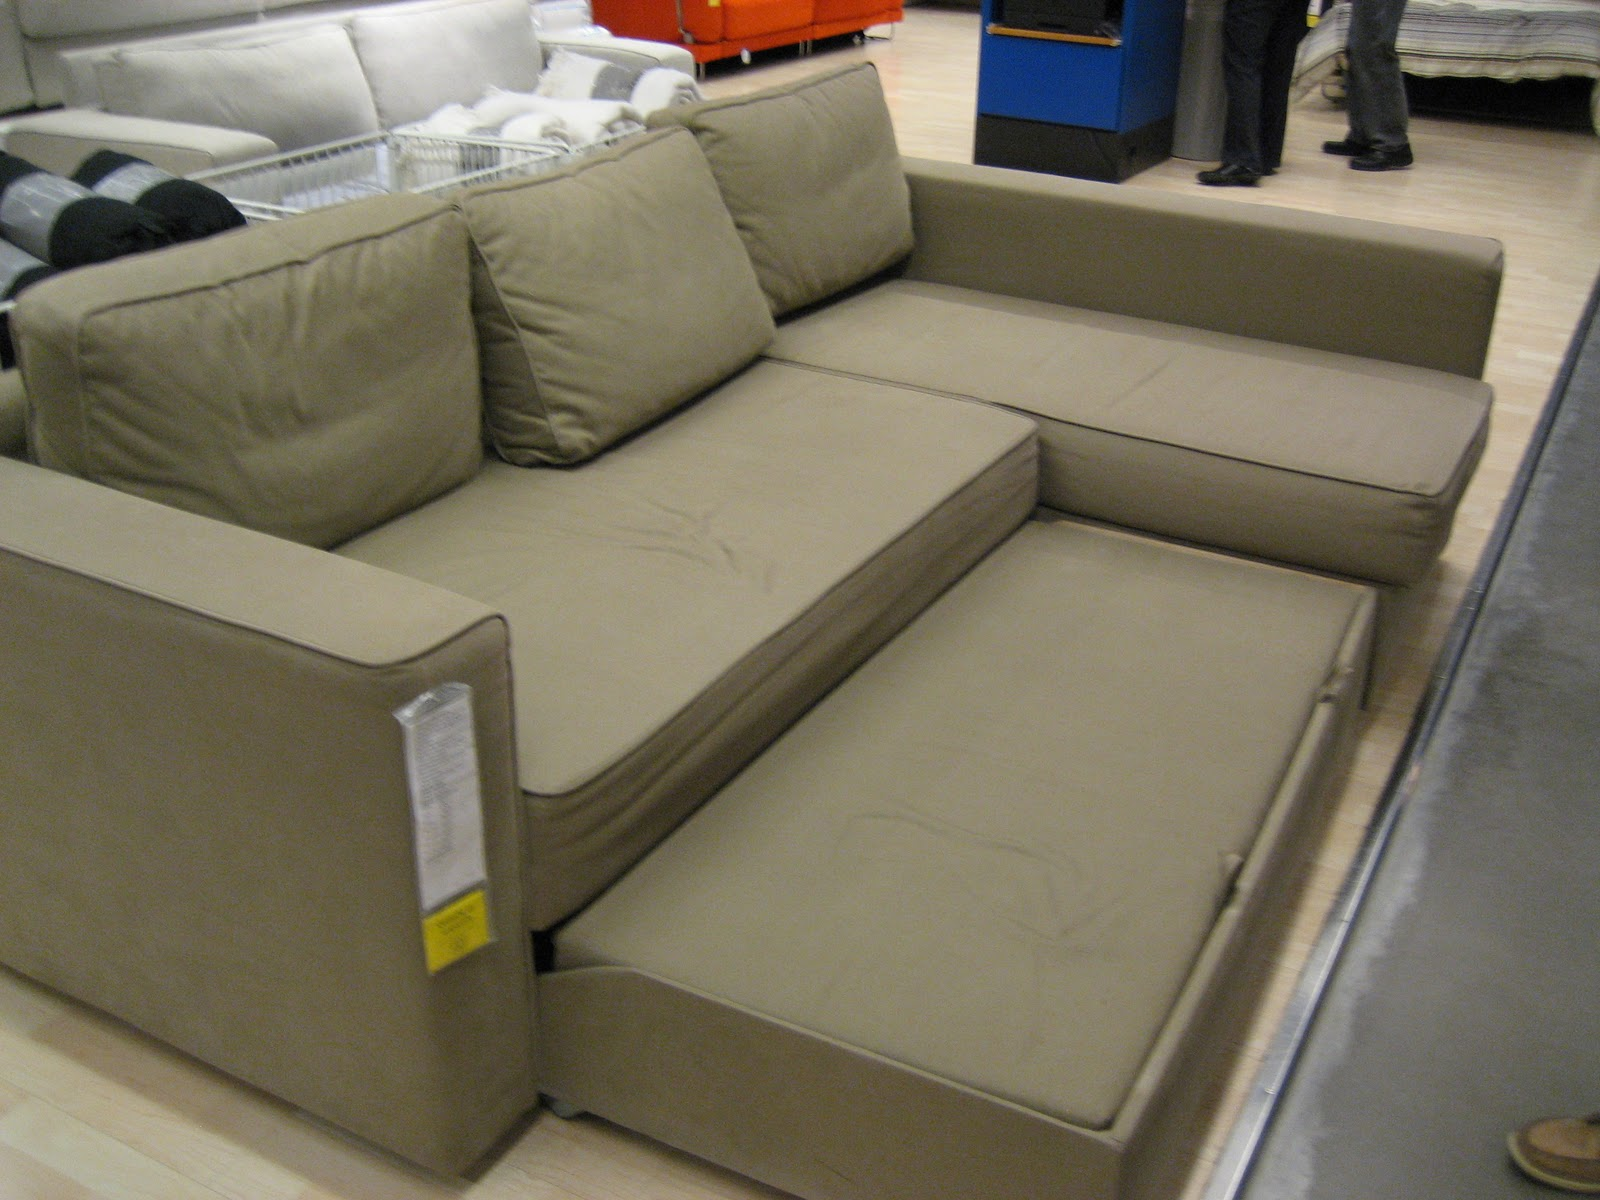 One Seat Sofa Bed Ikea Sectional With Ottoman No Ordinary Cole: Wish List